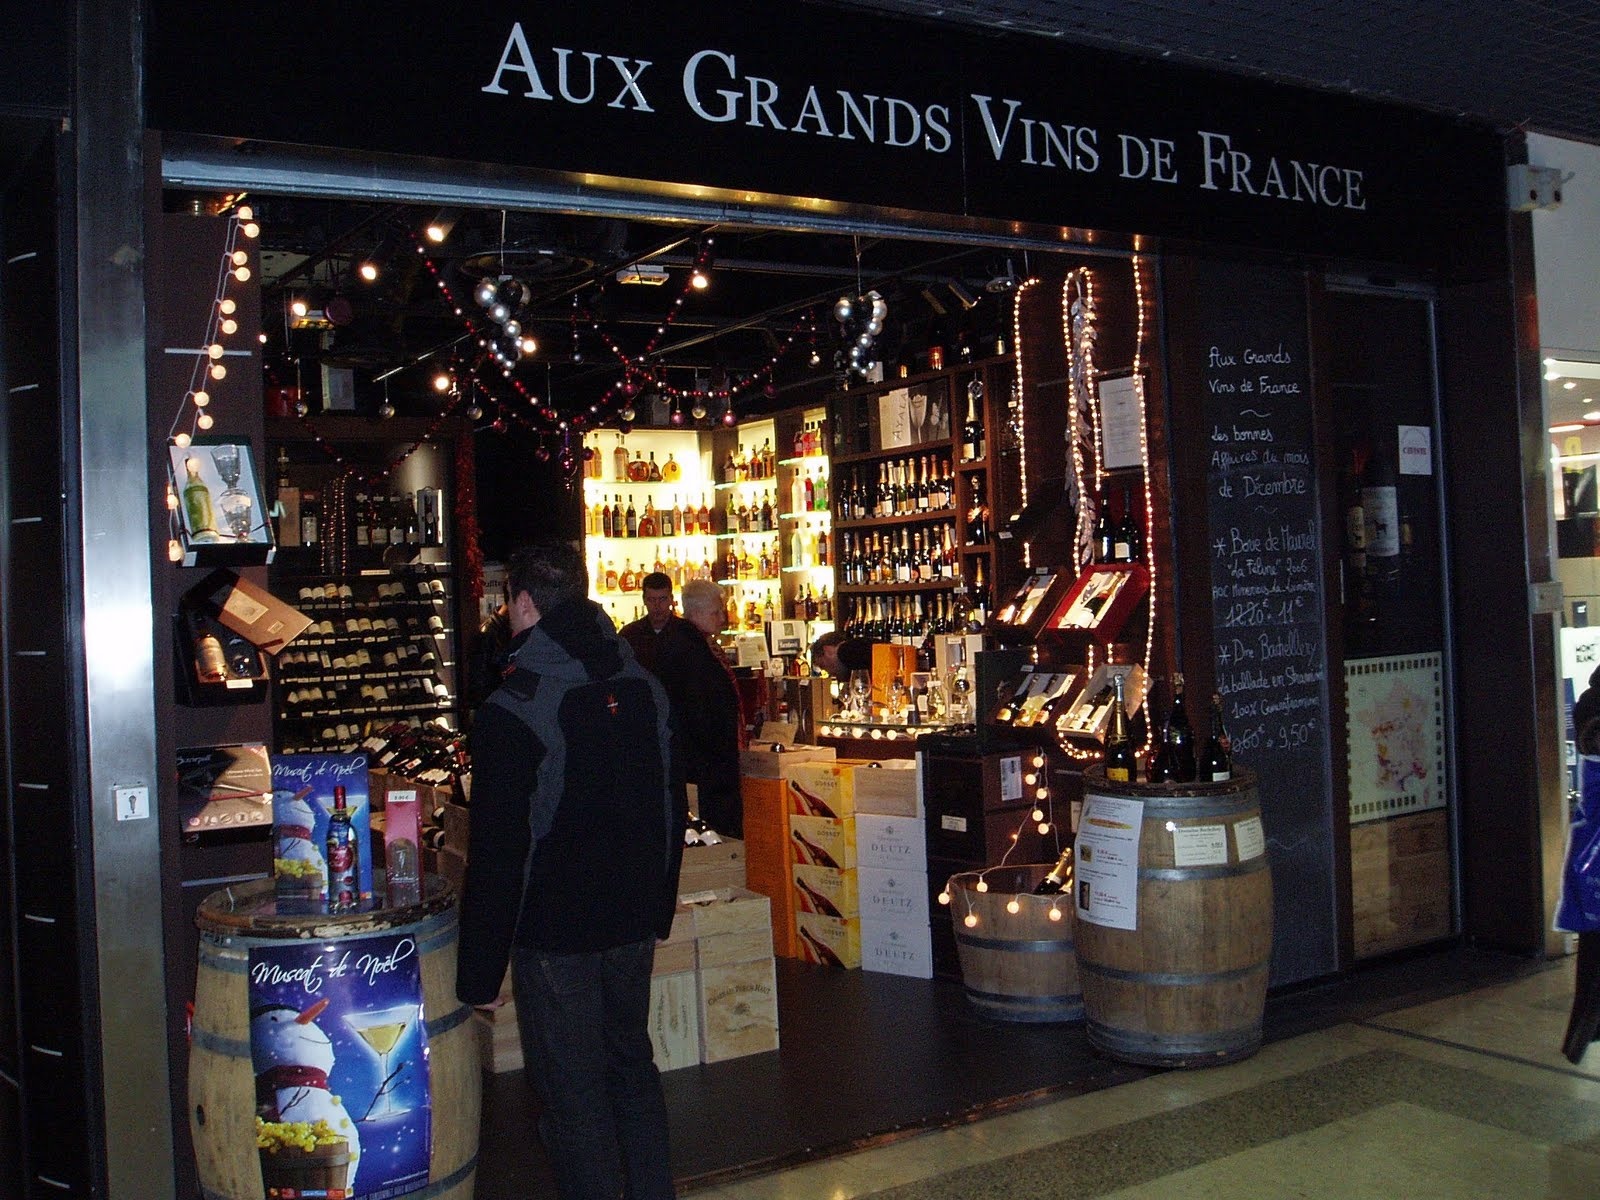 Magasin ouvert aujourd hui magasin ouvert aujourd 39 hui - Magasin ouvert aujourd hui en moselle ...